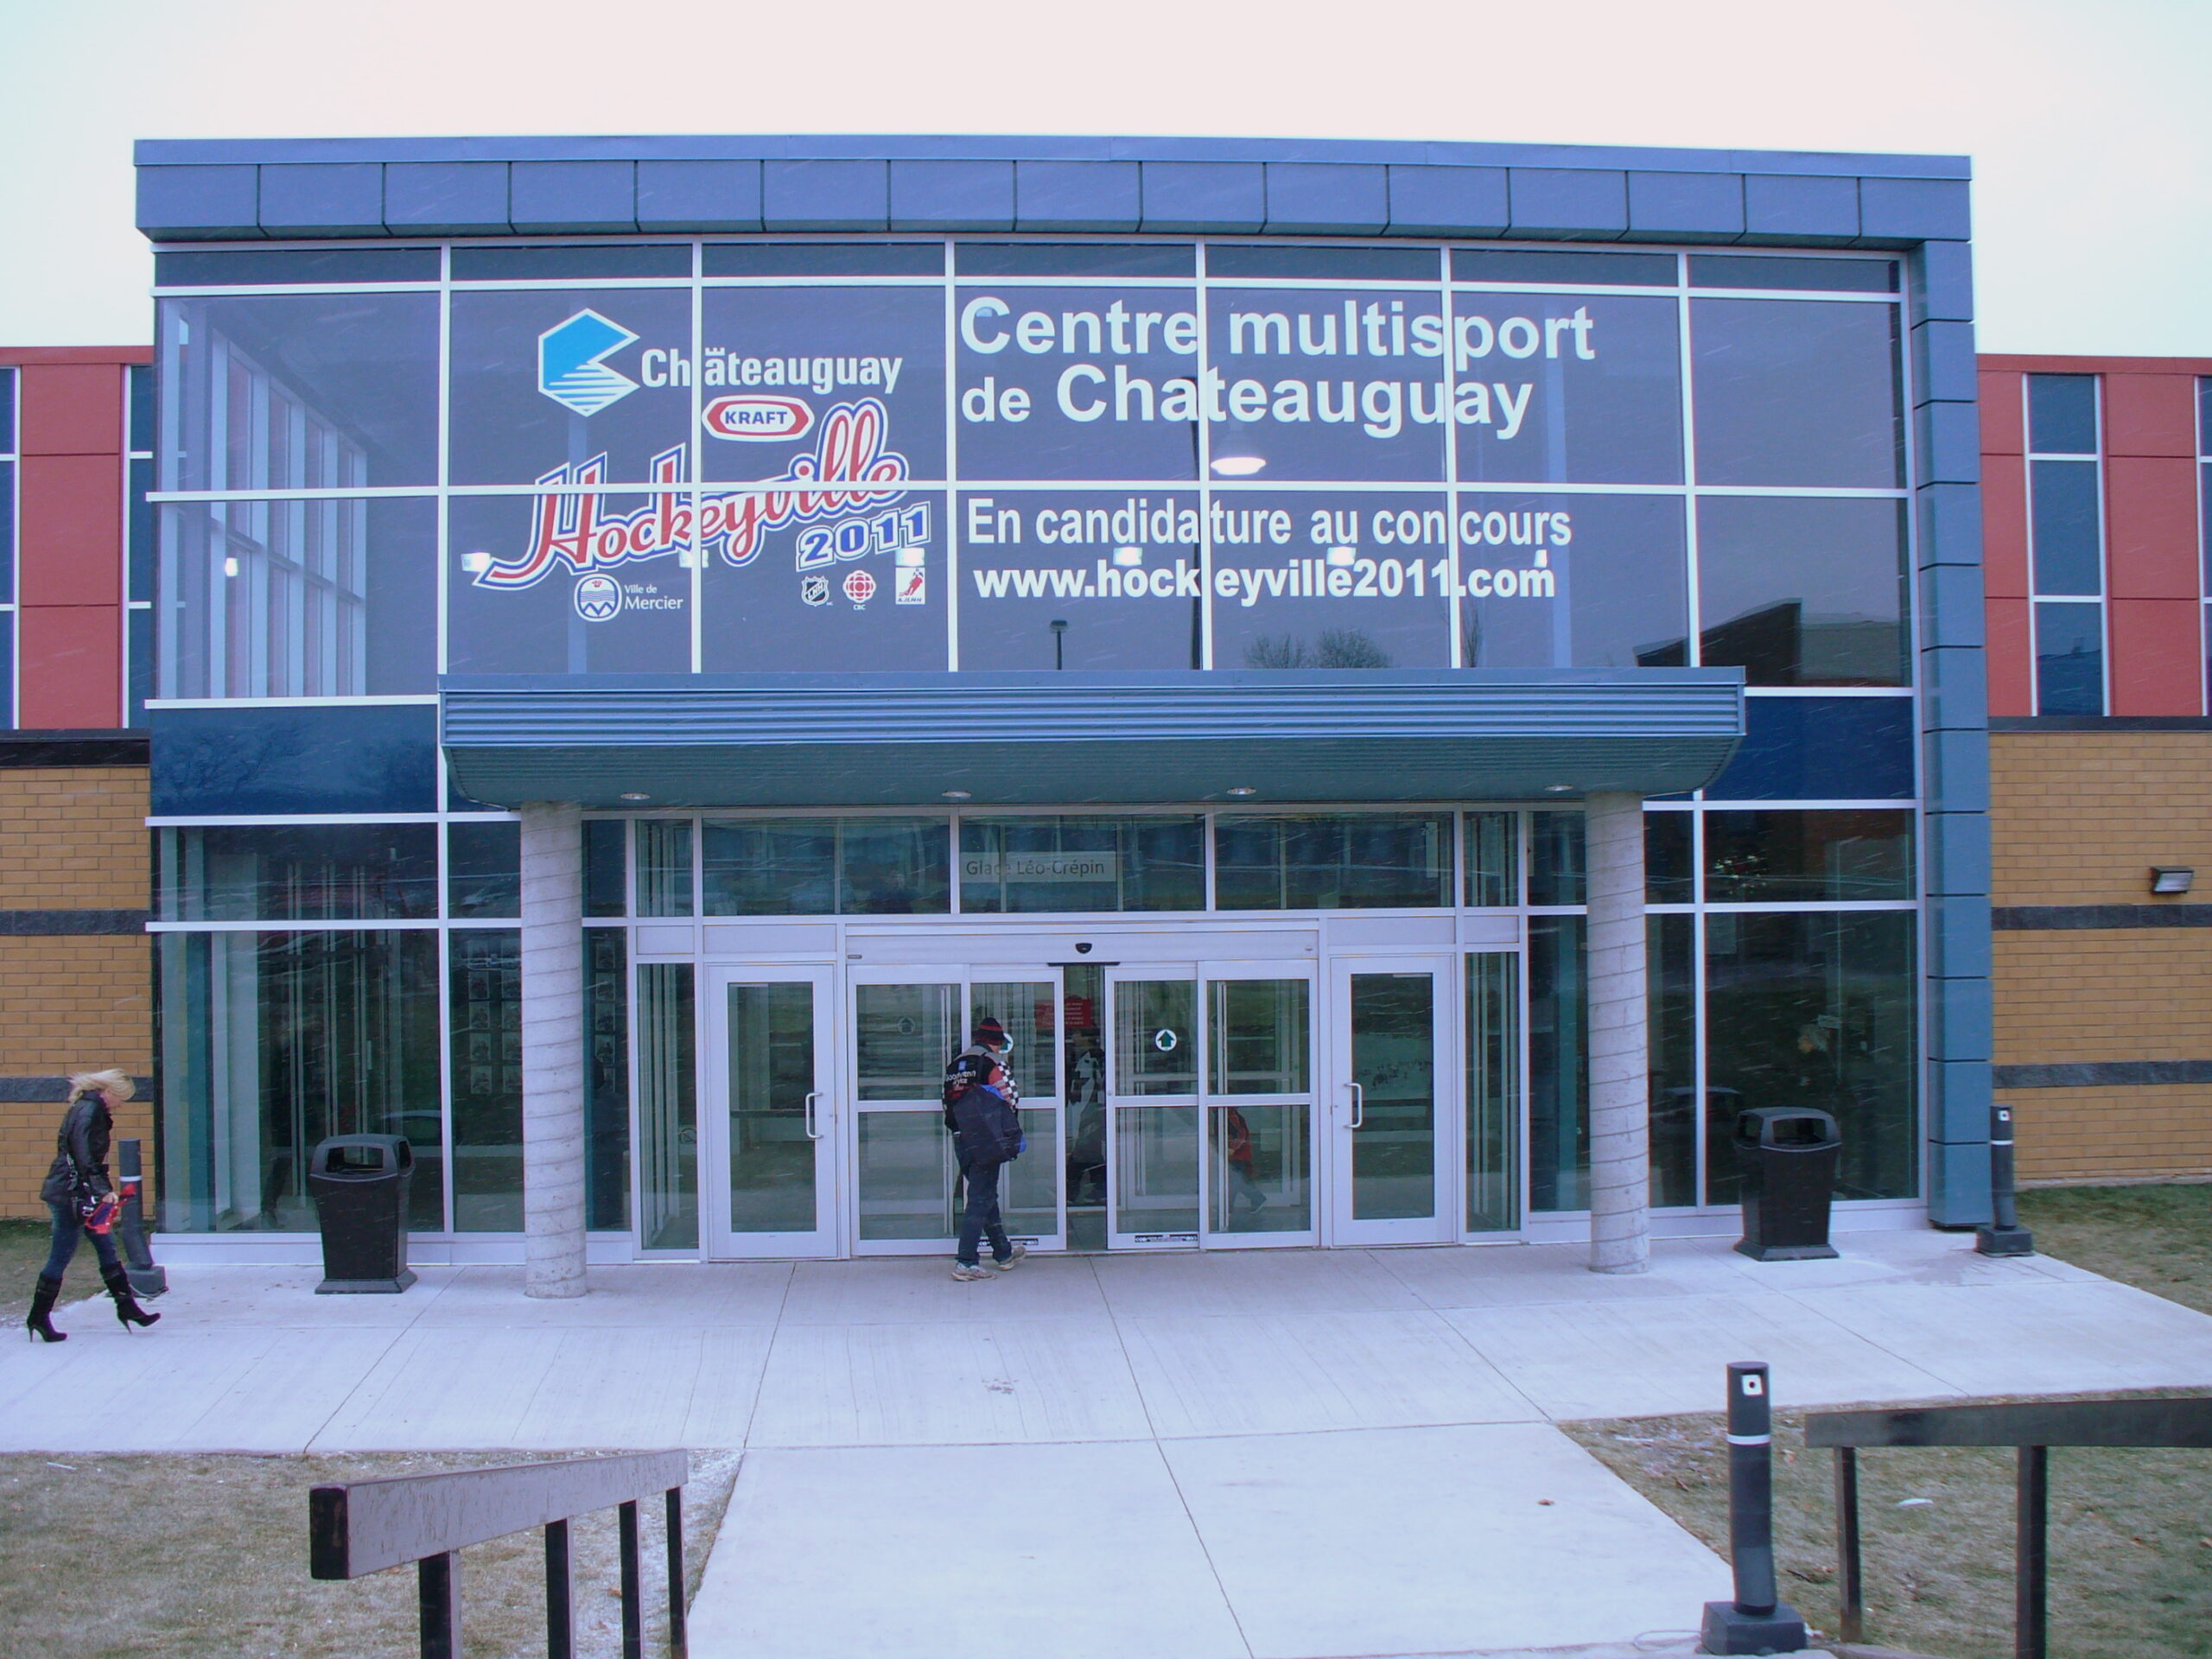 Multisport Centre